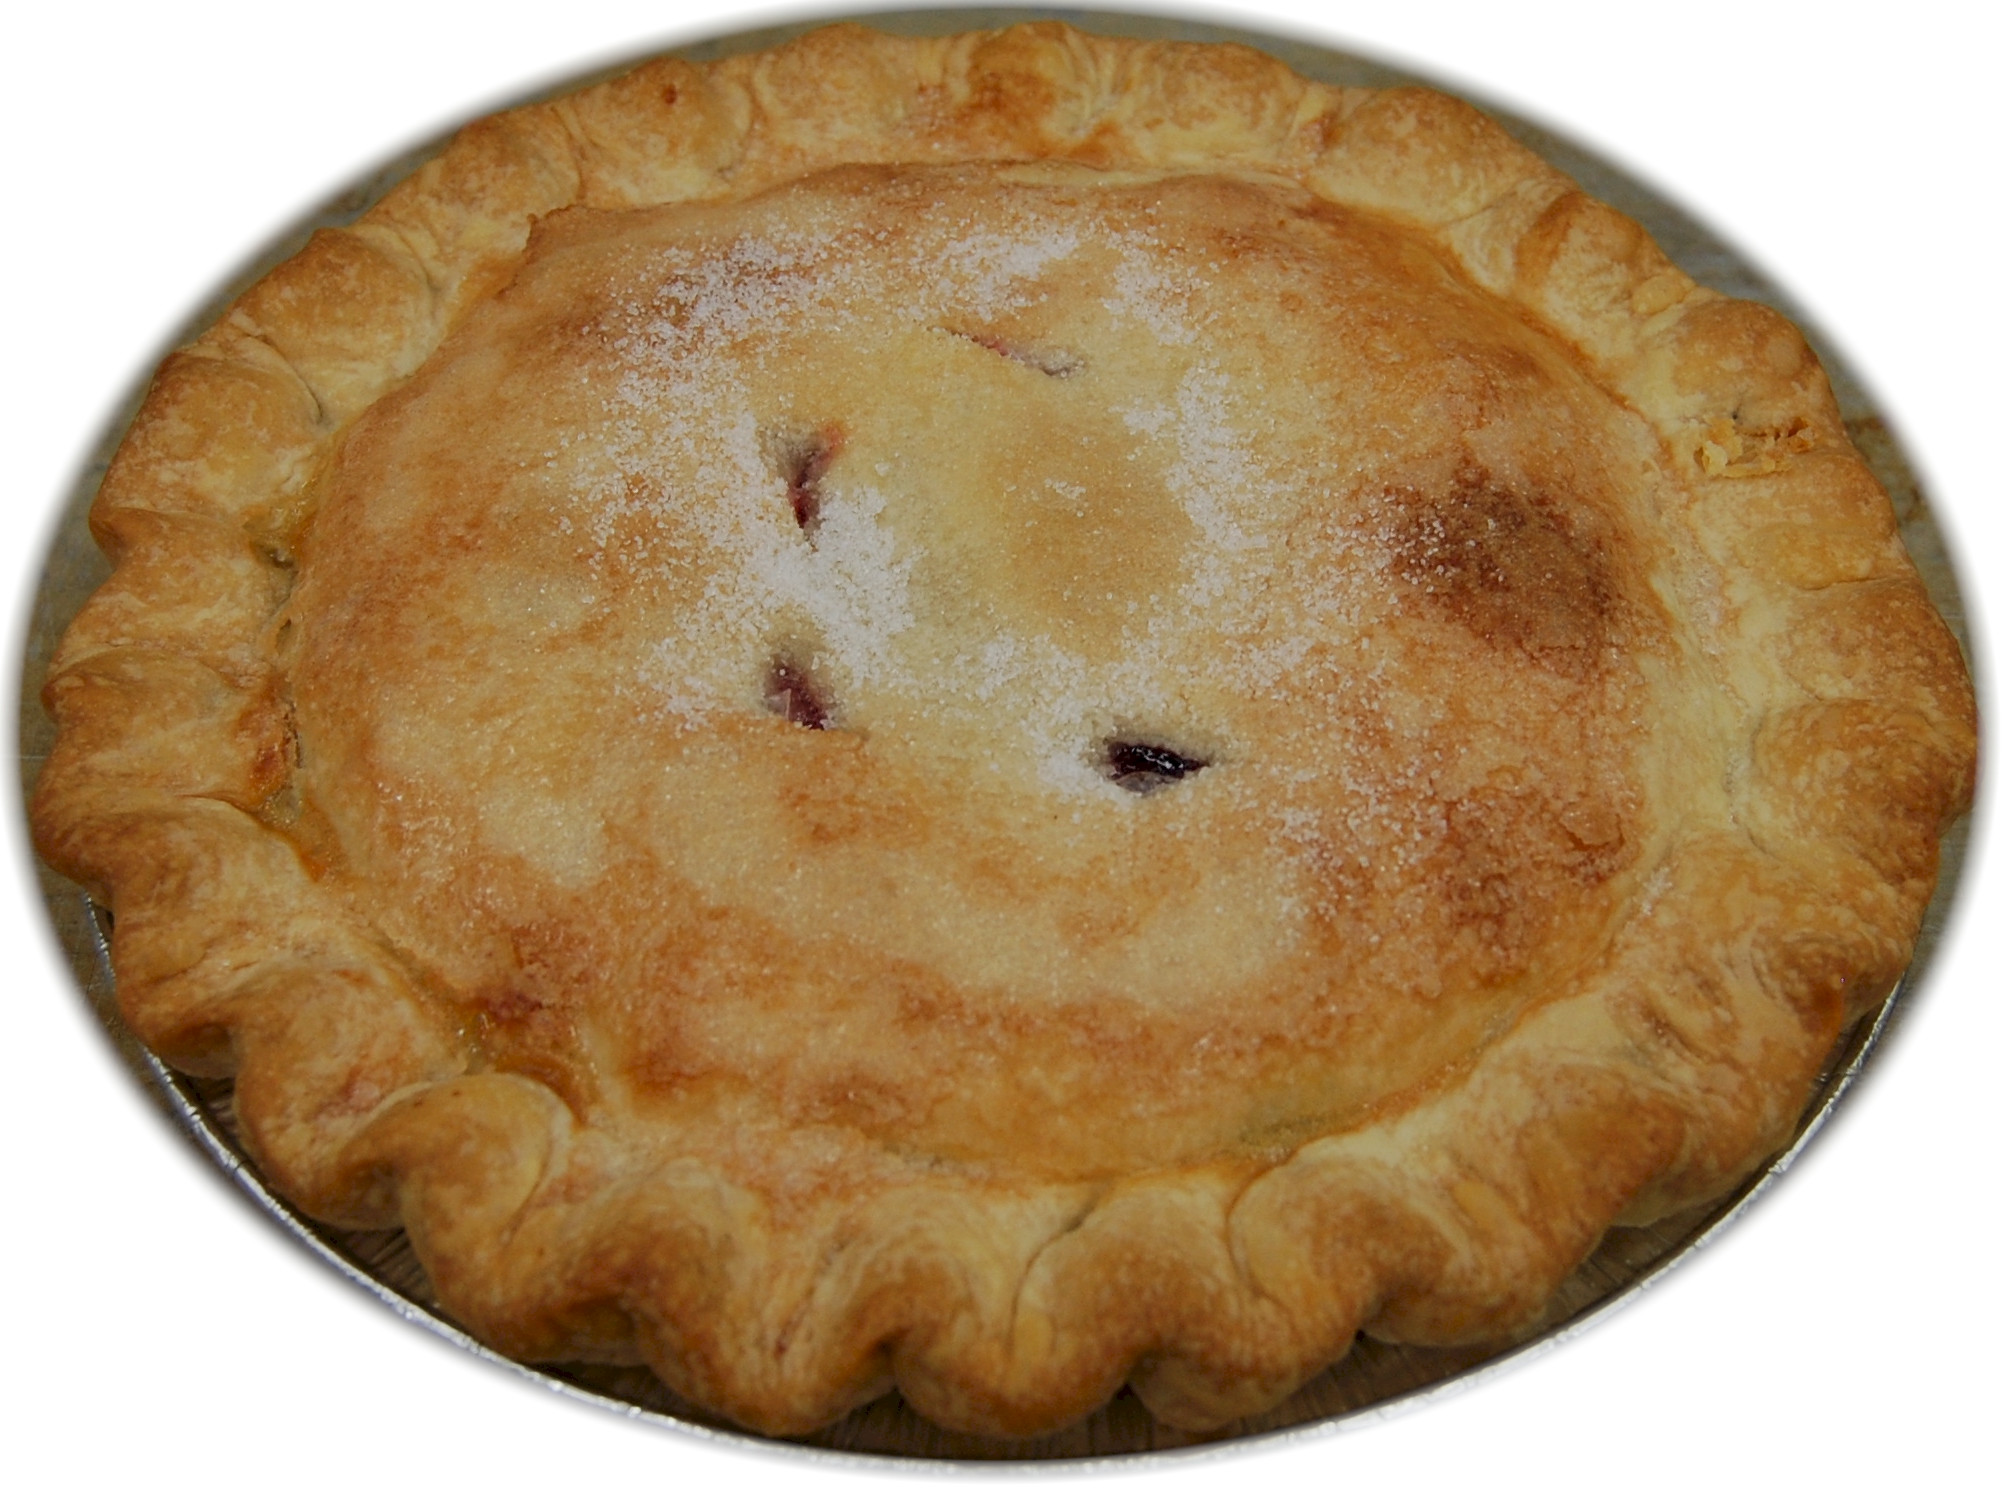 Apple Pie 4Th Of July  Fourth of July Independence Day Fleckenstein s Bakery